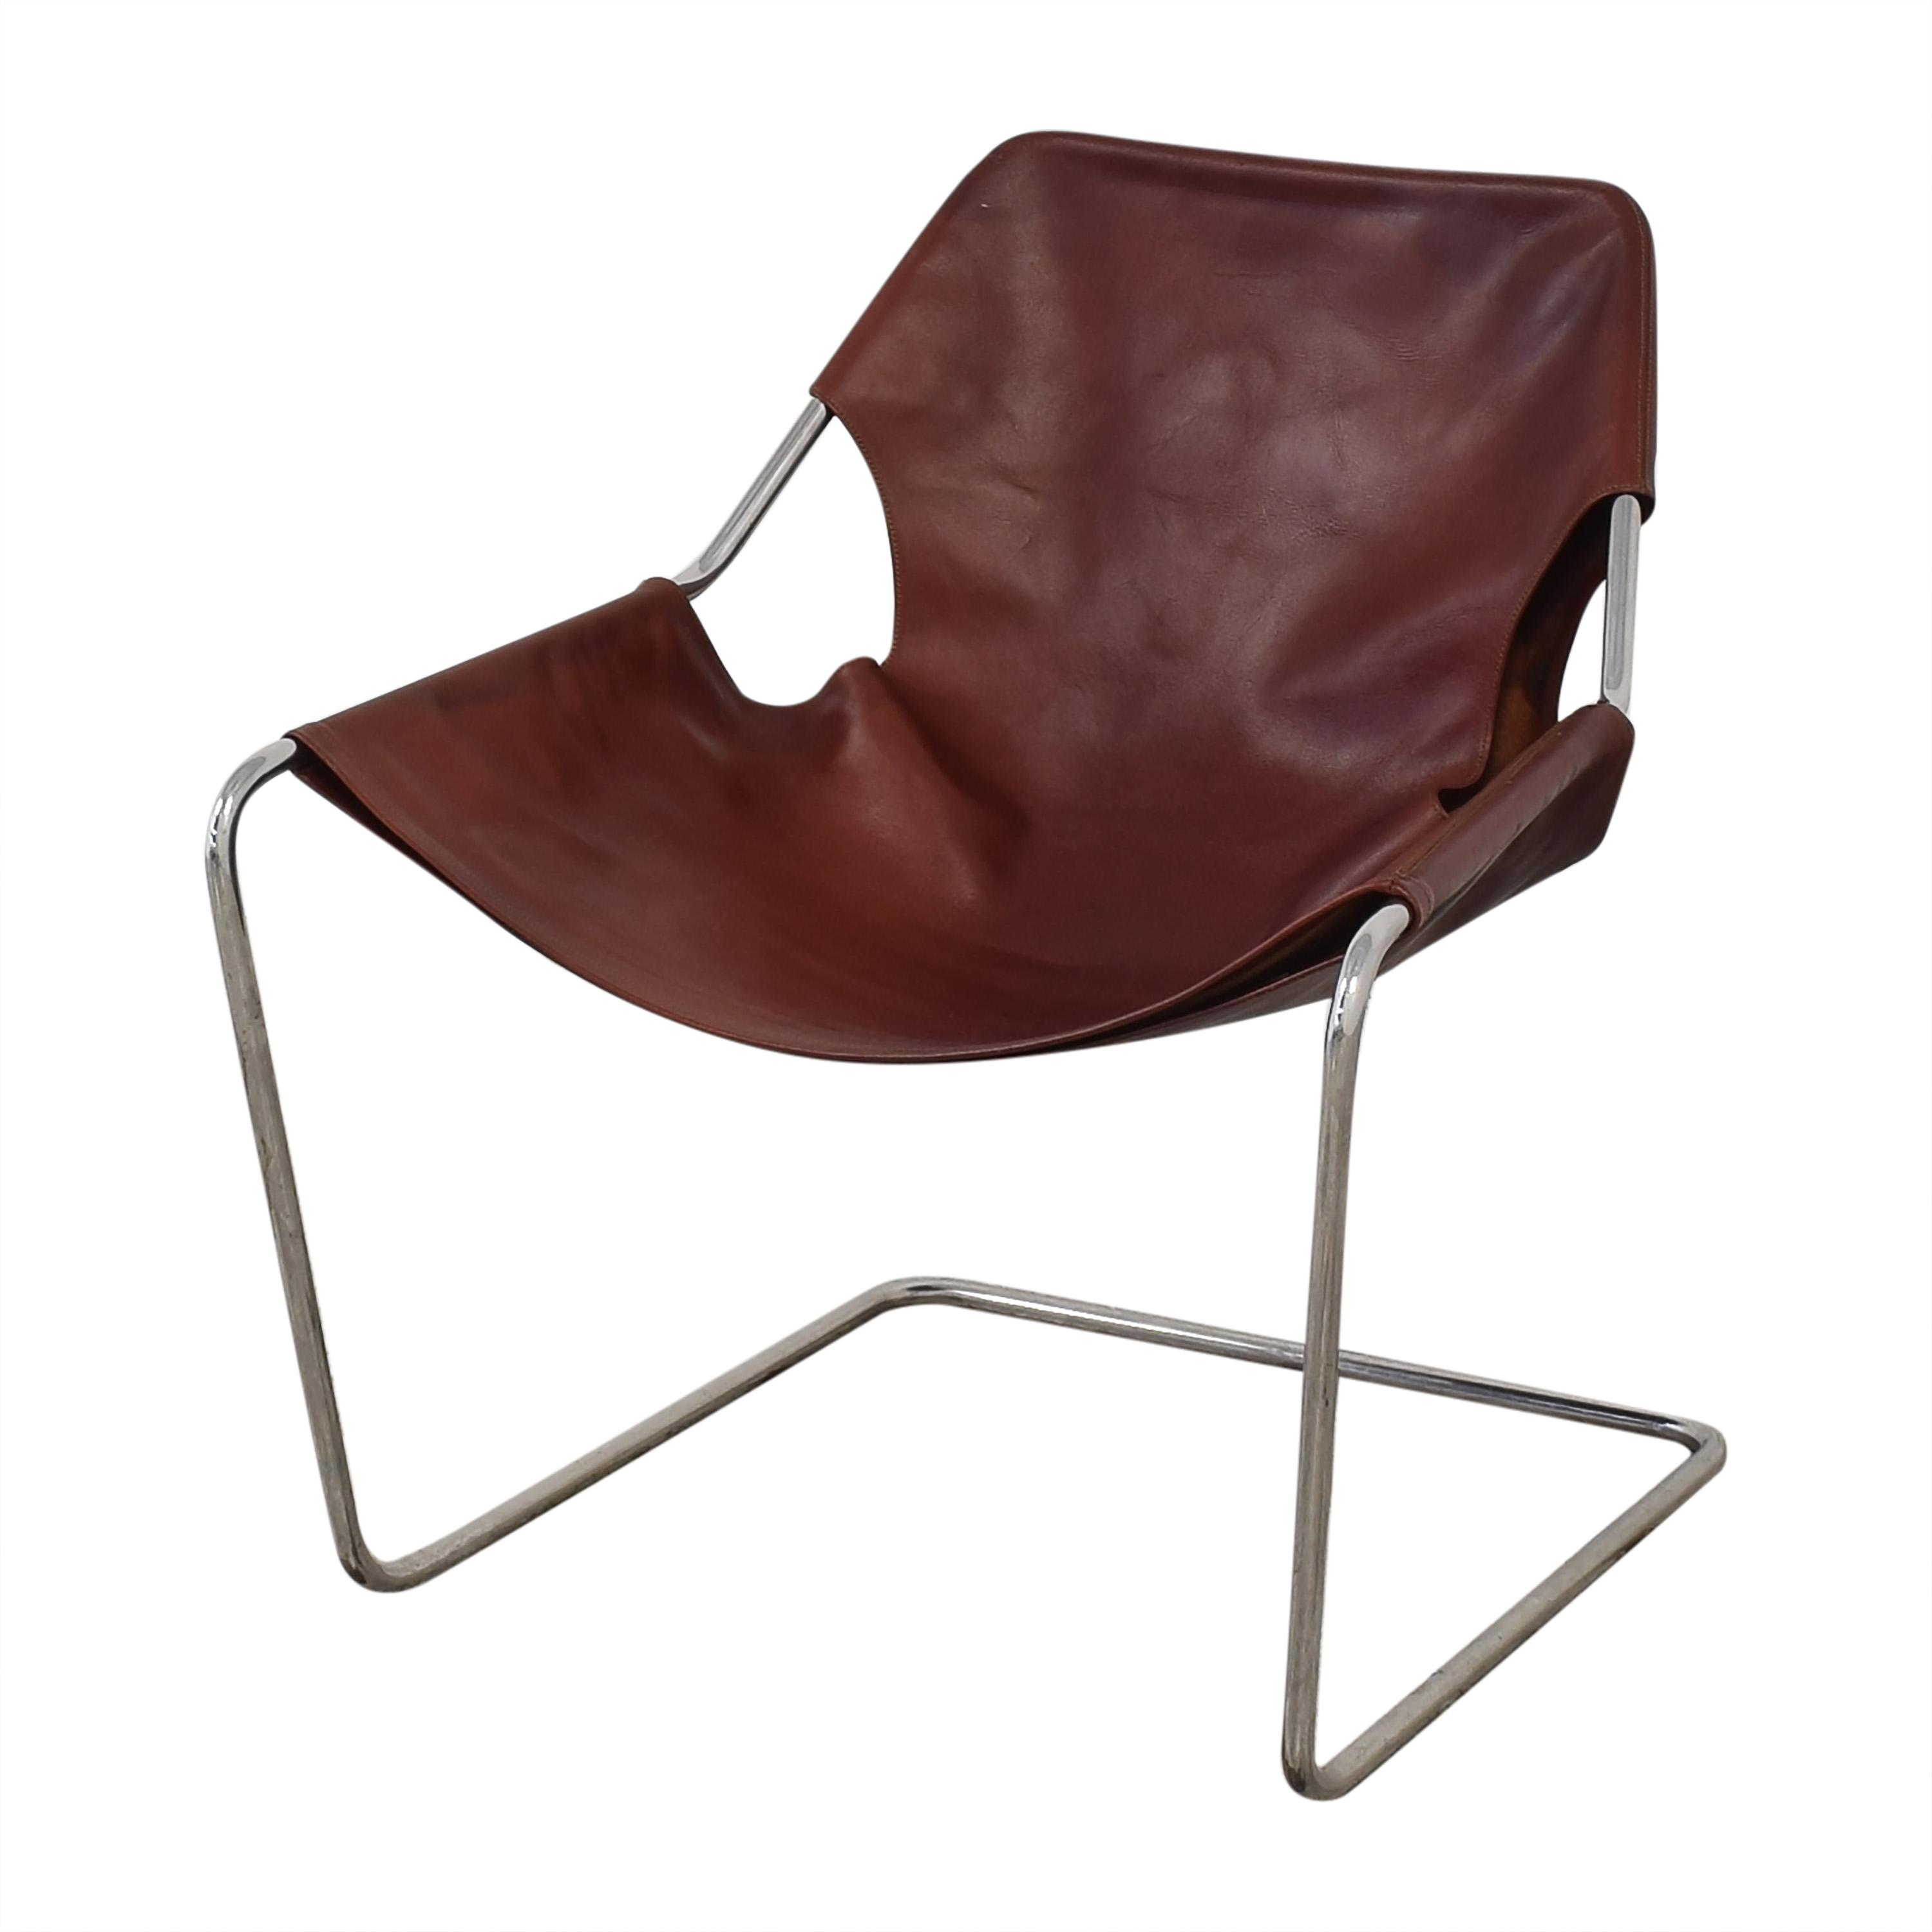 Design Within Reach Design Within Reach Paulistano Armchair second hand